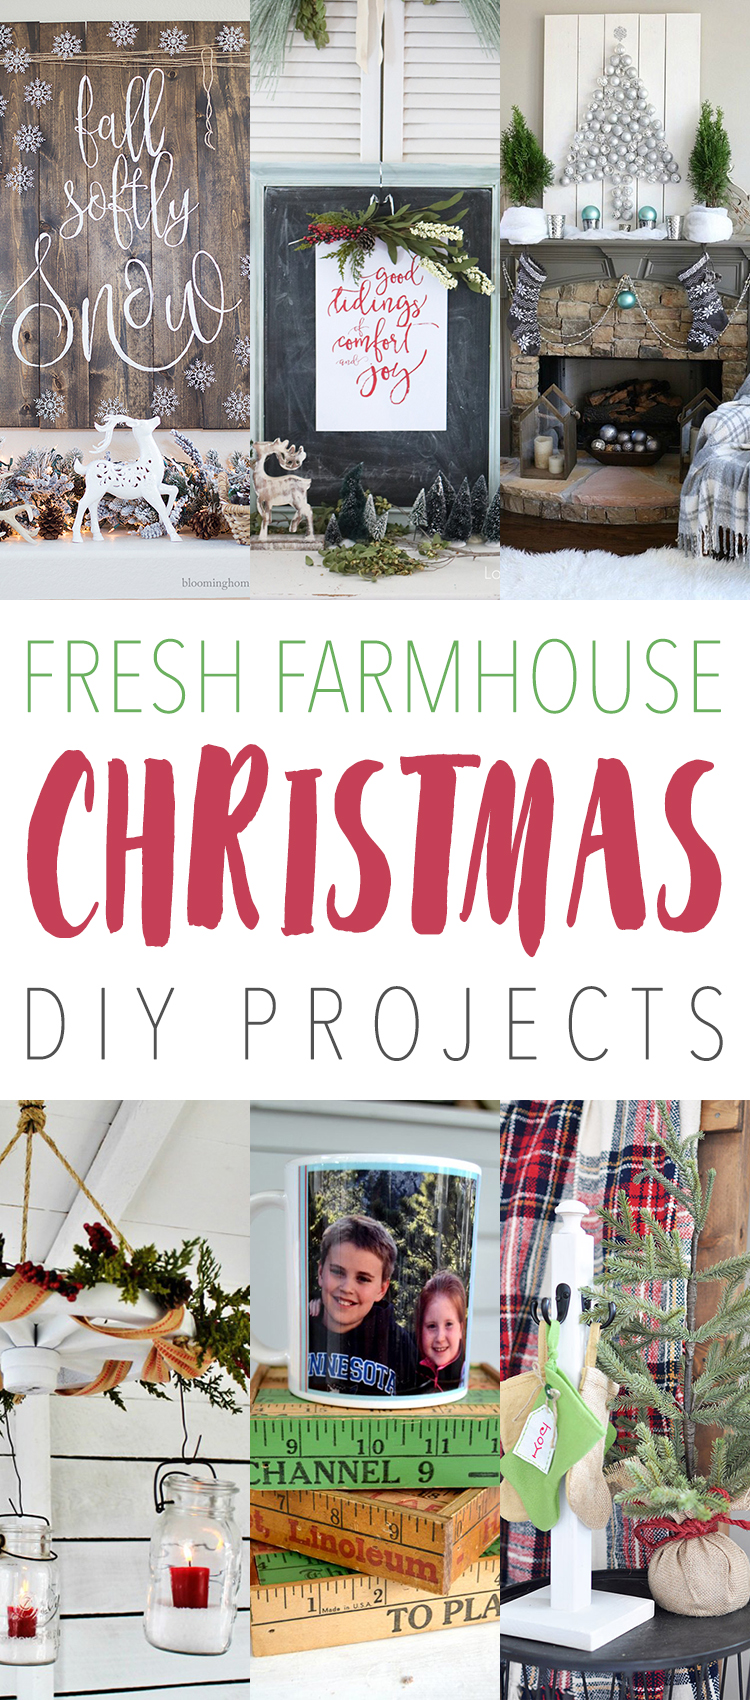 http://thecottagemarket.com/wp-content/uploads/2016/11/FarmhouseChristmas-TOWER-00001-1.jpg